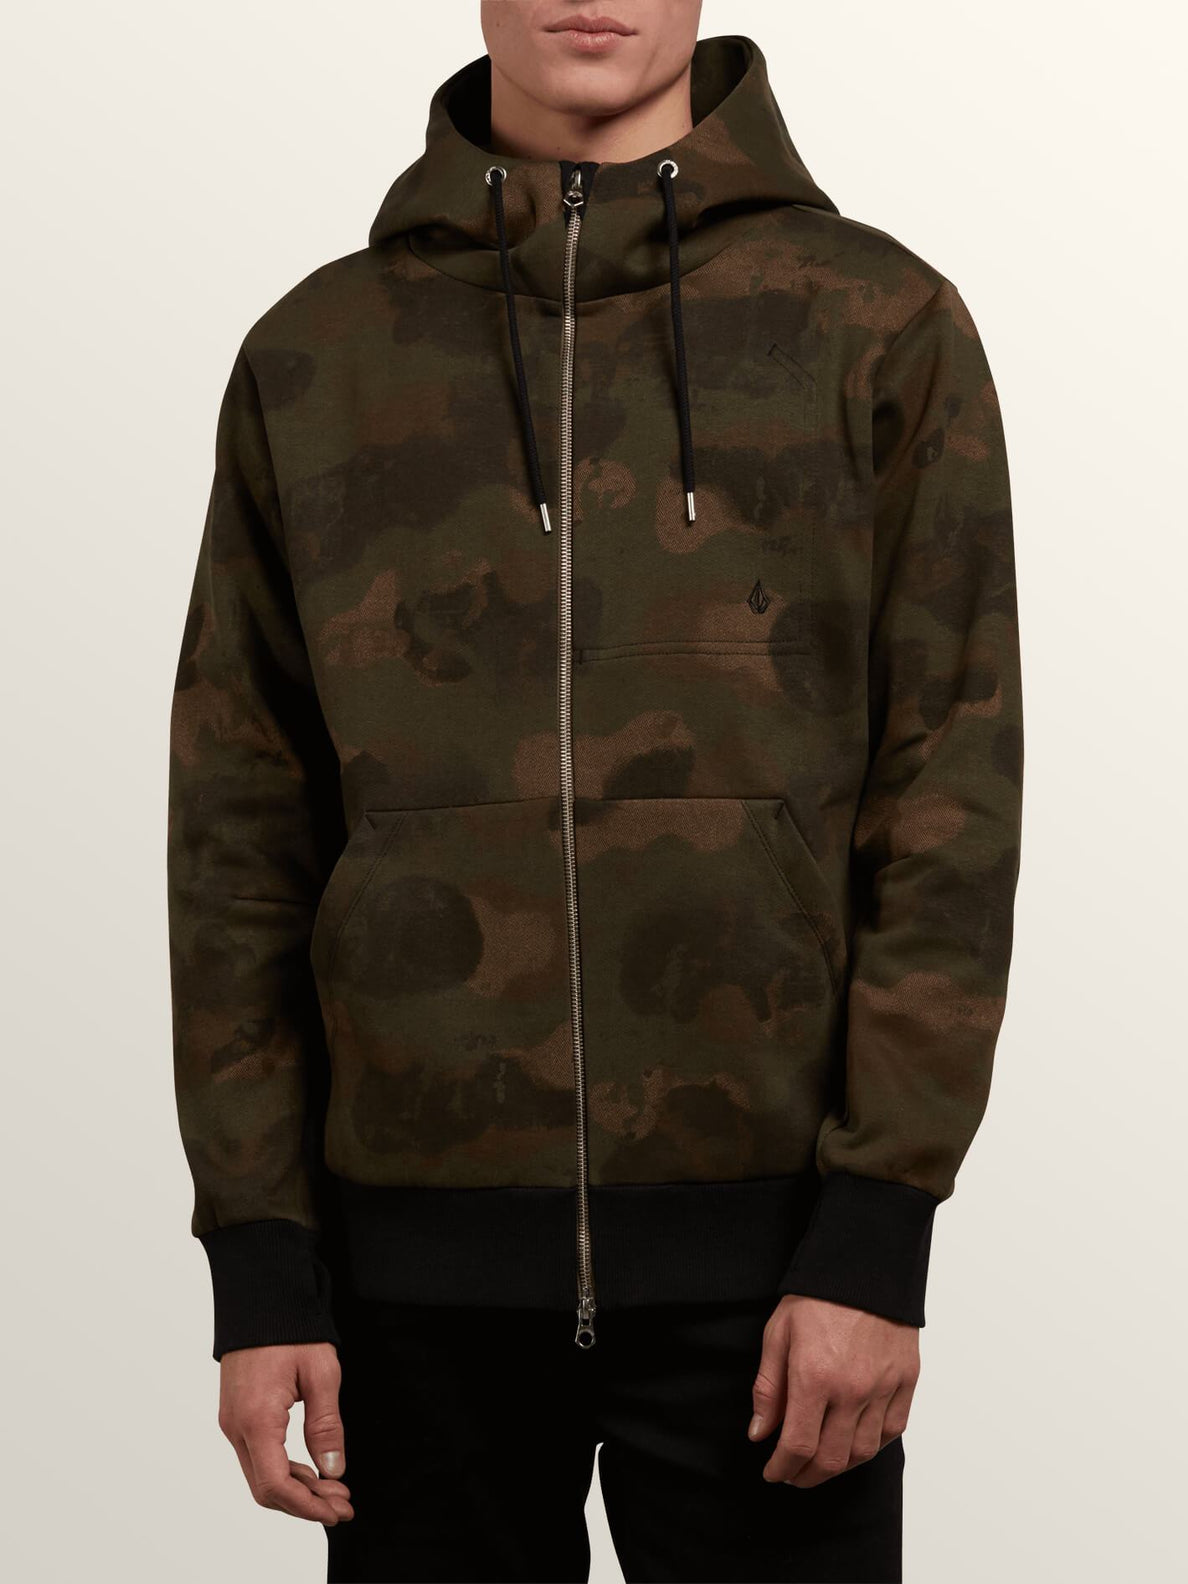 Vsm Empire Zip Hoodie In Camouflage, Front View